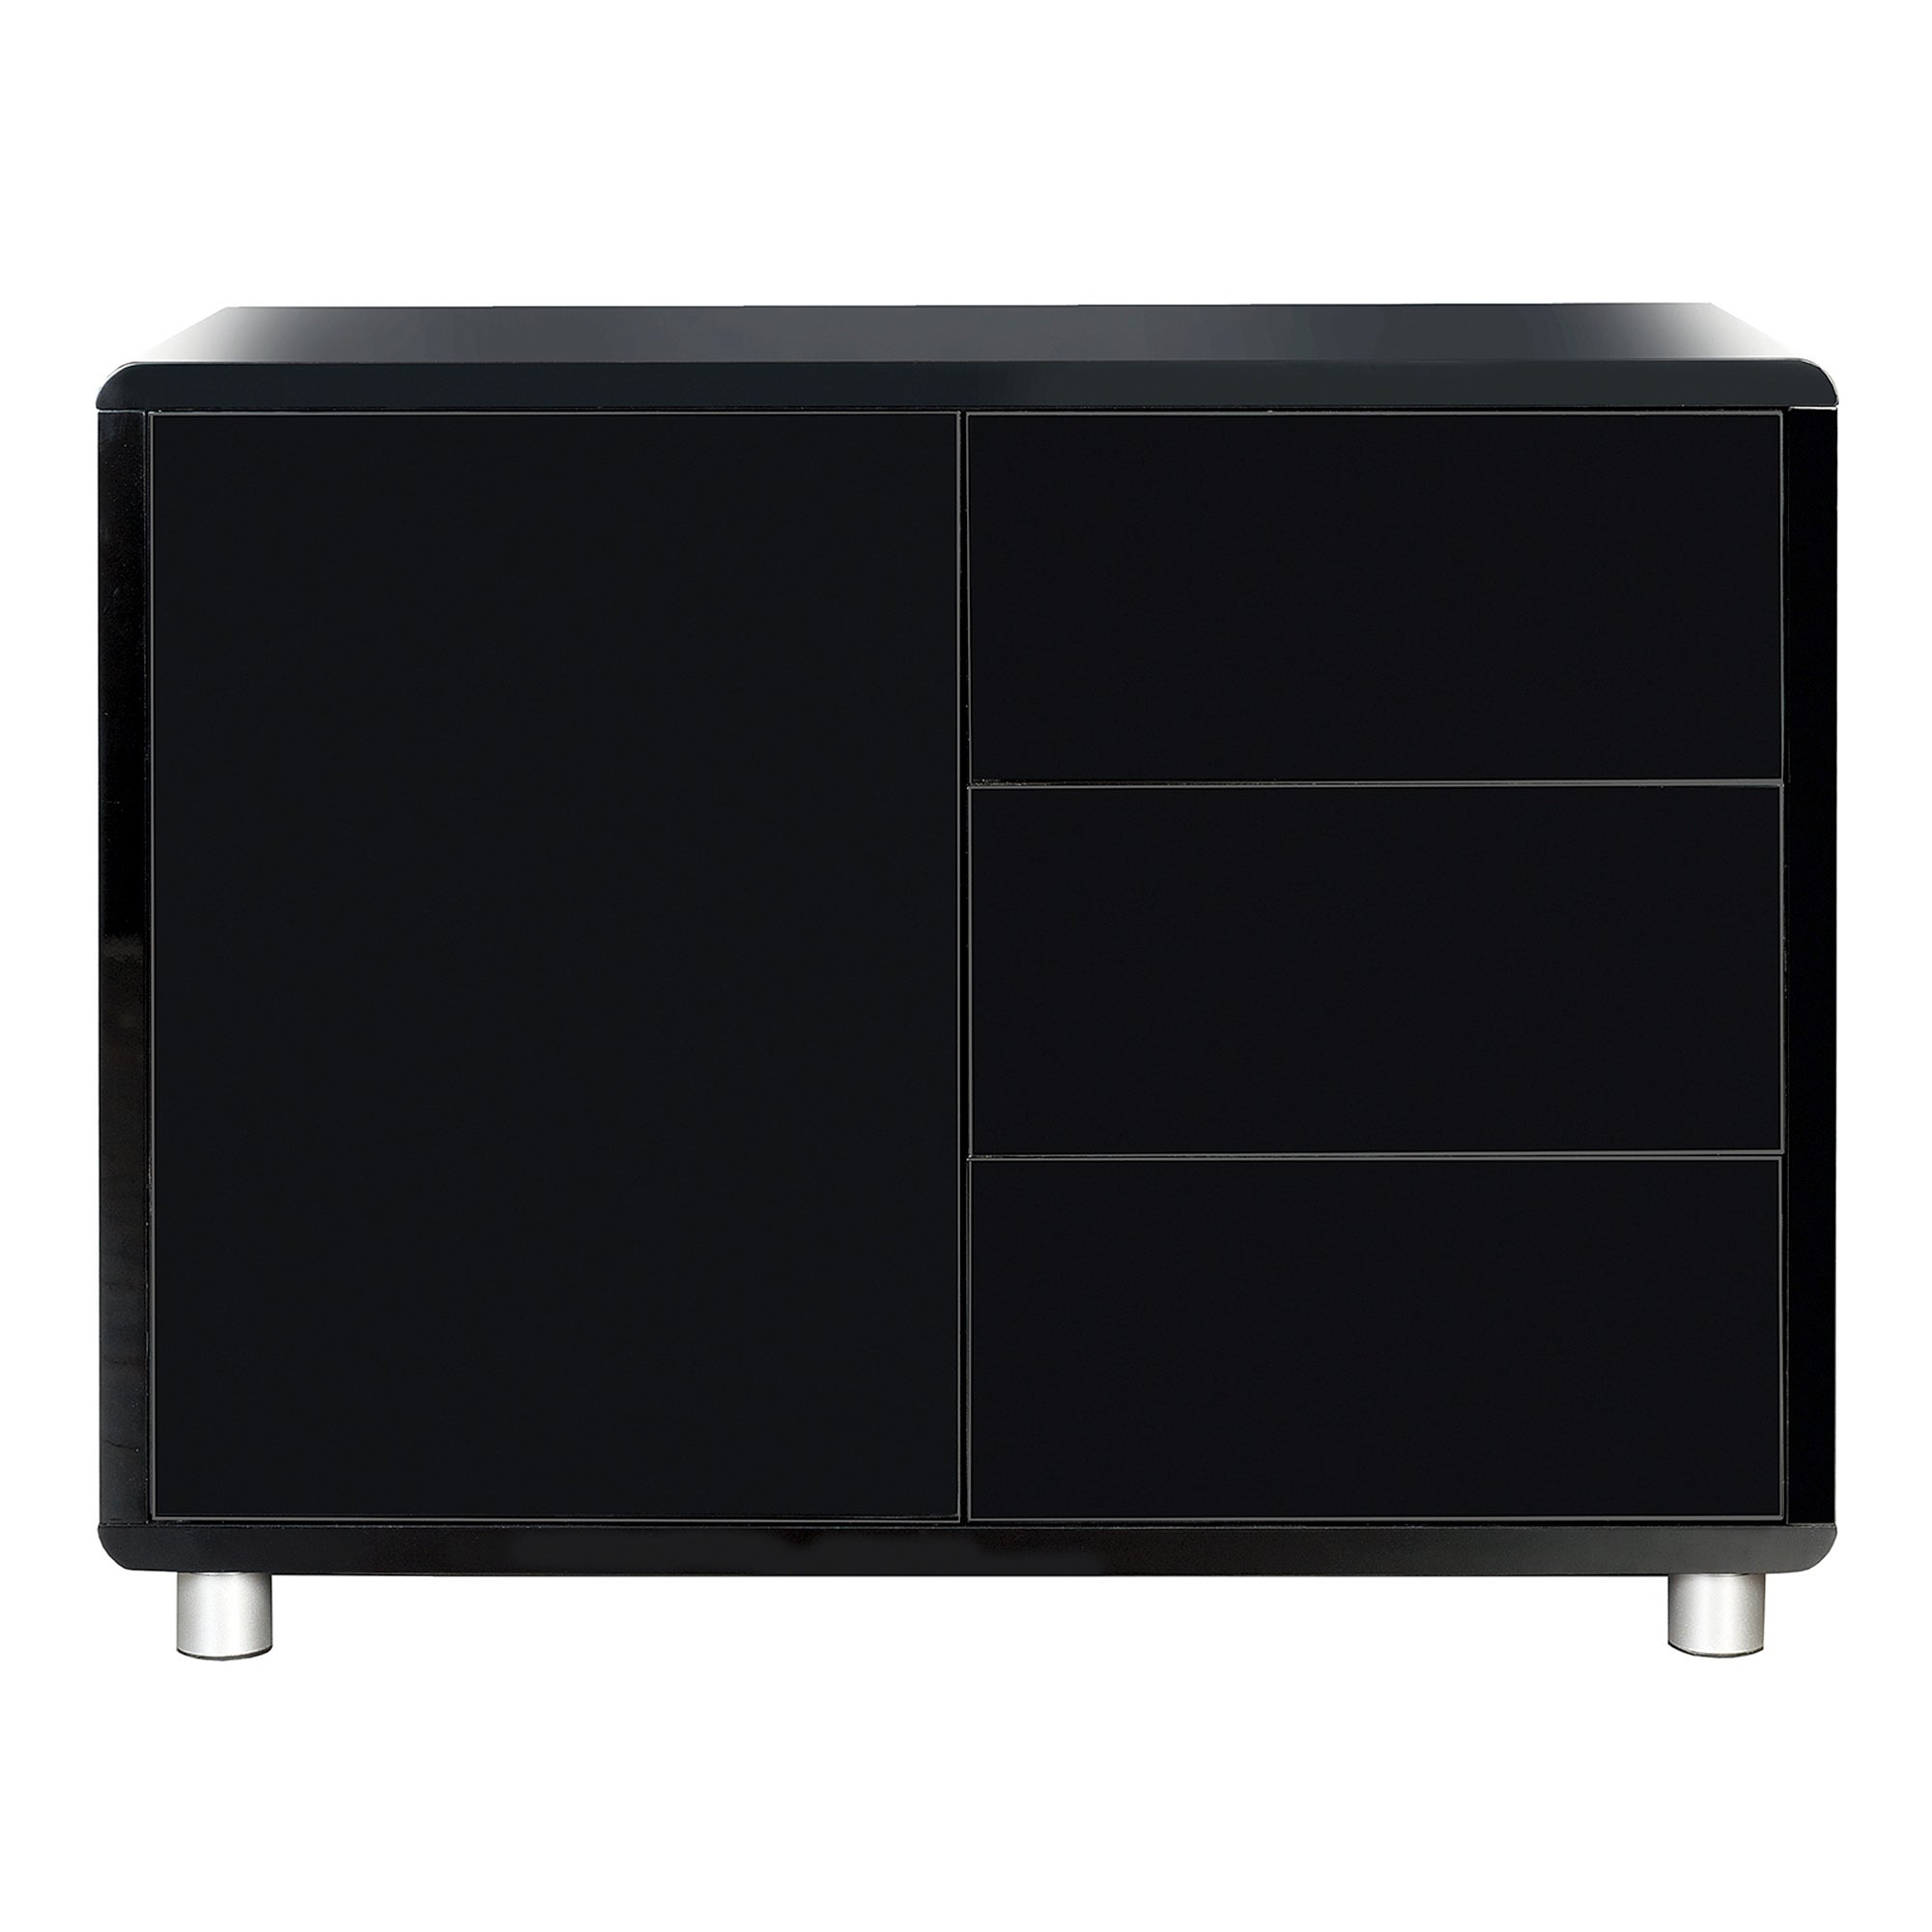 Soho Black Gloss Small Sideboard